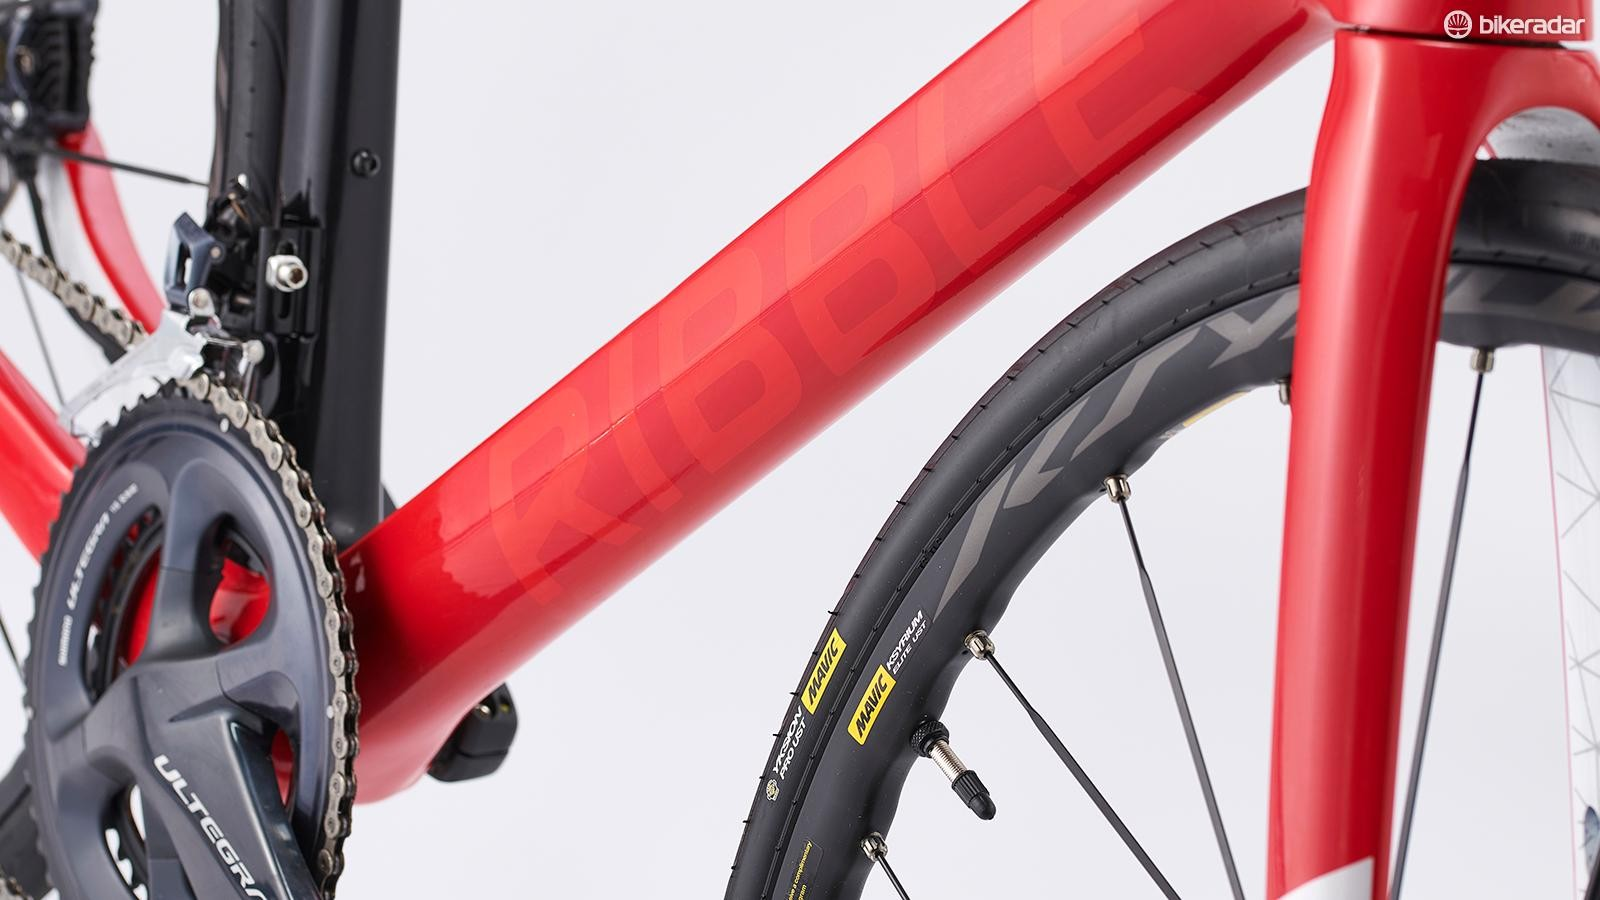 The frame is constructed with T800 and T1000 Toray carbon fibres